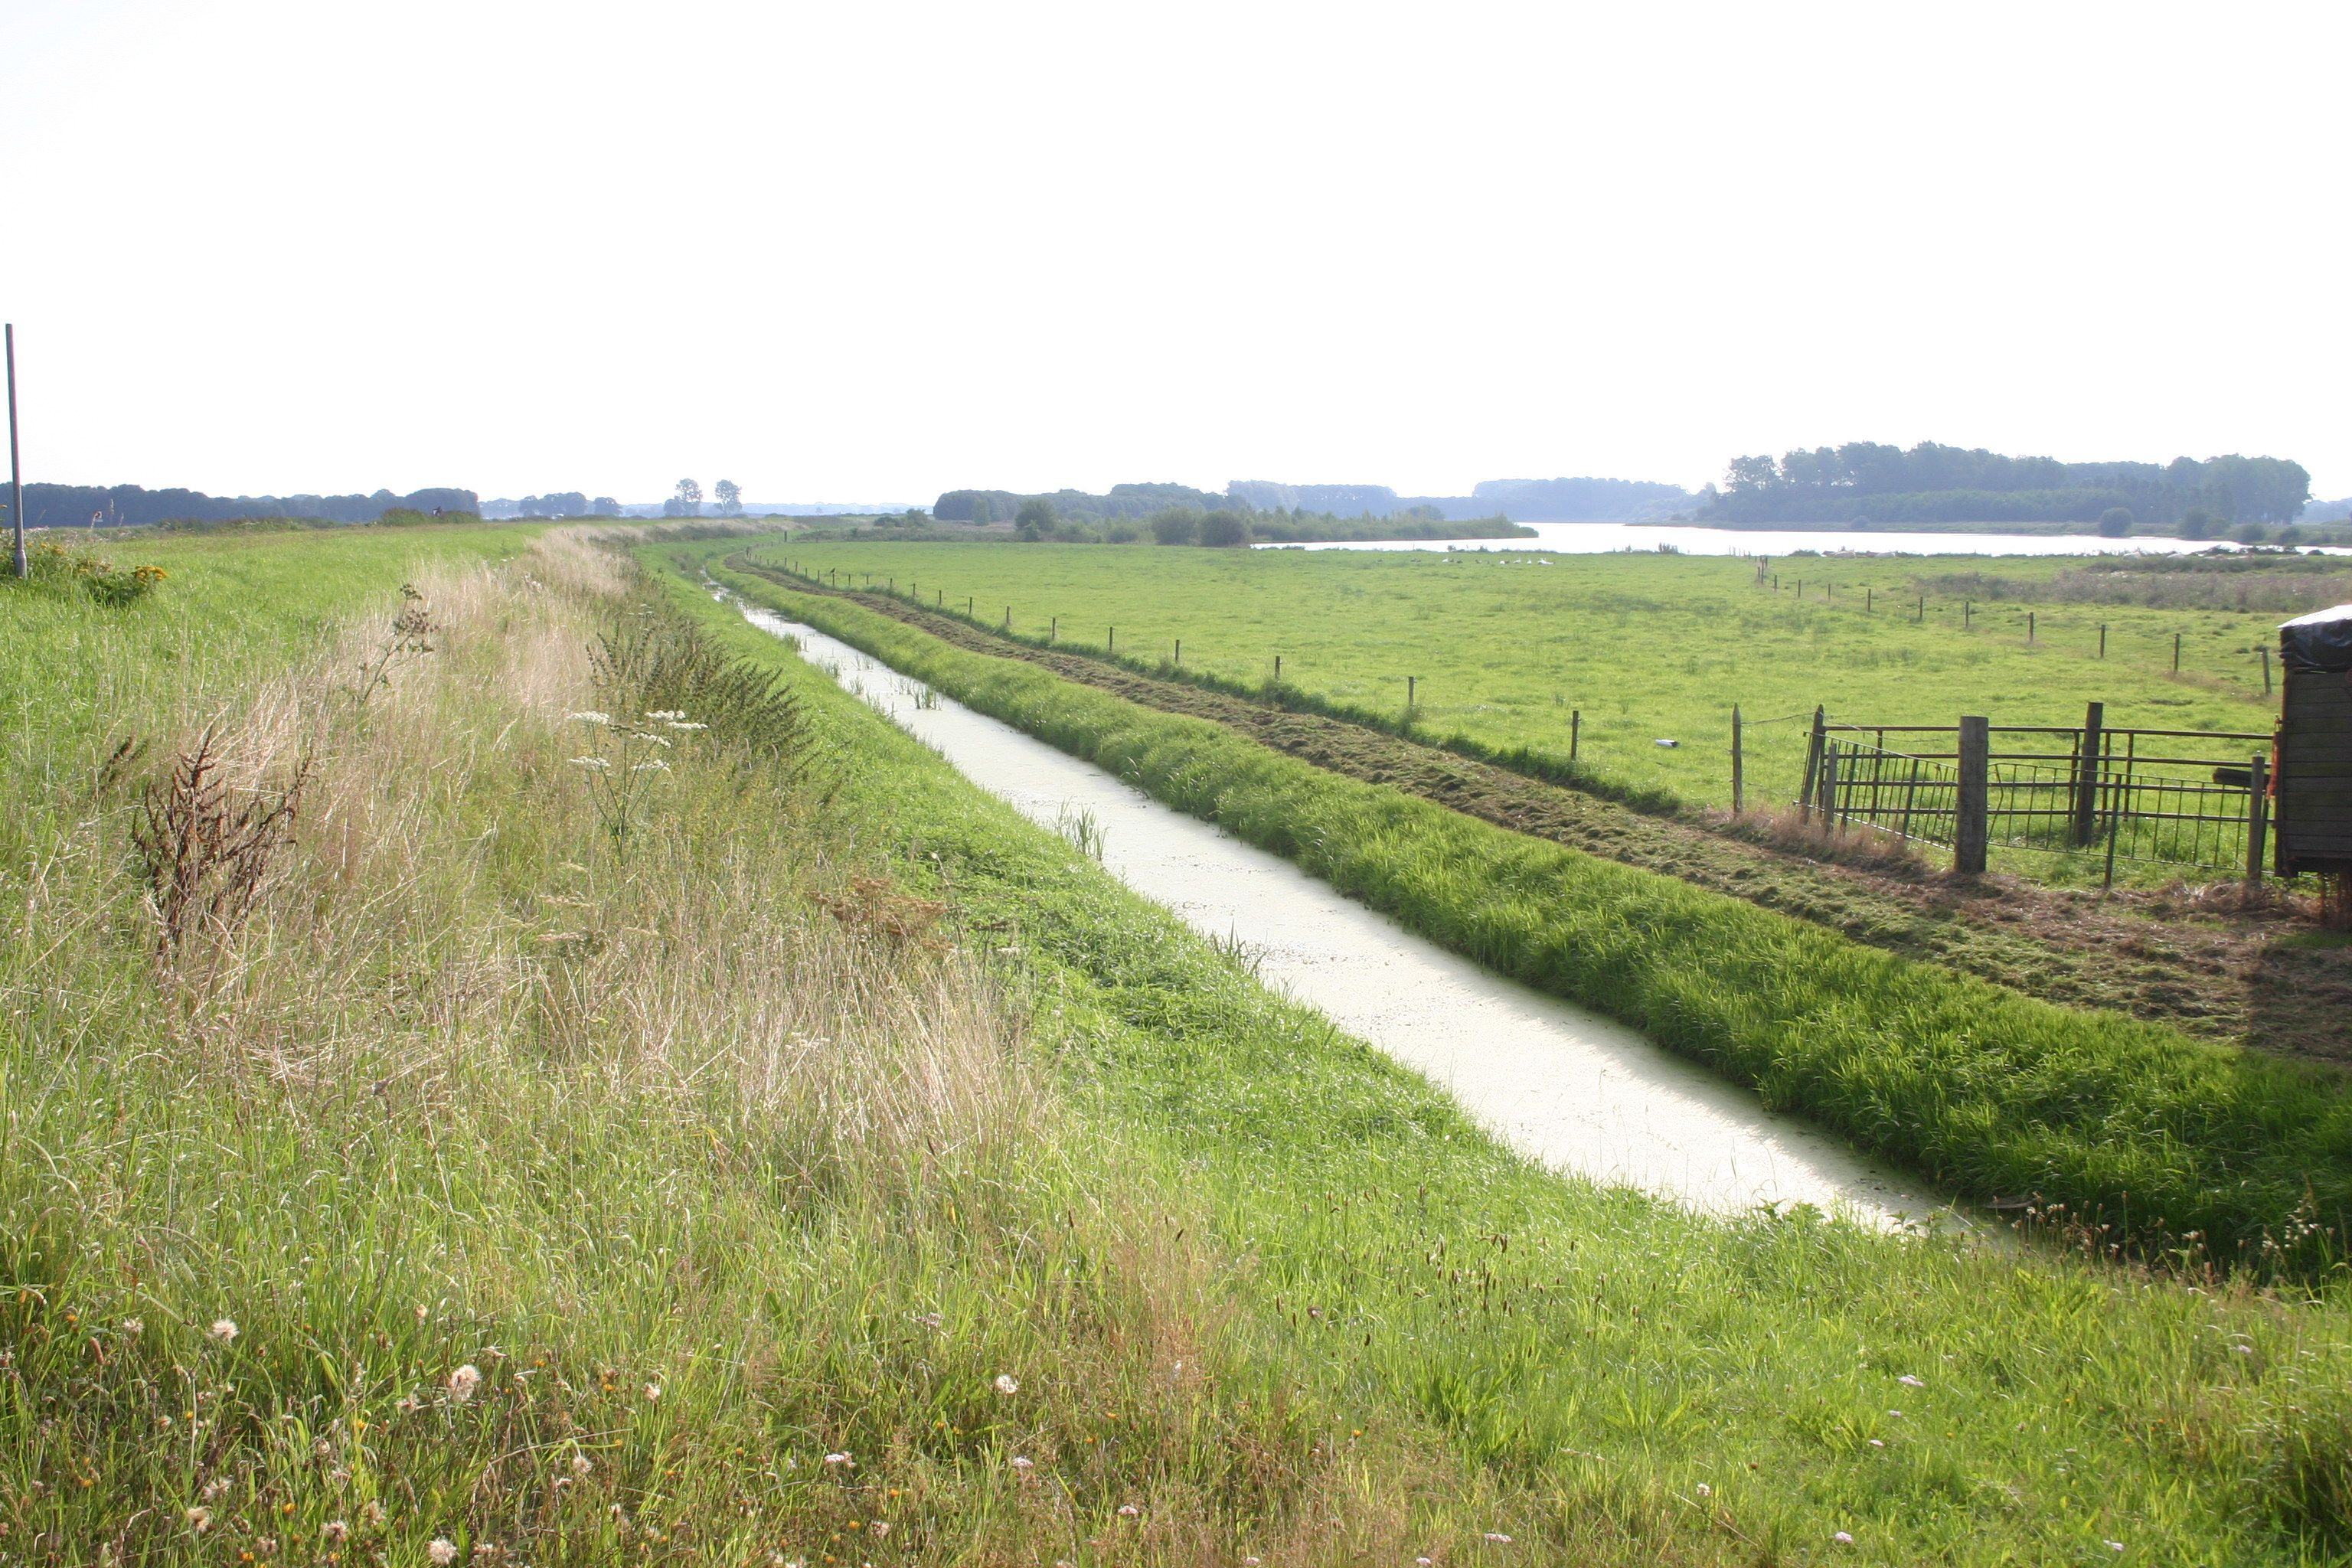 Waterberging Panjerd-Veeningen in waterschap Drents Overijsselse Delta